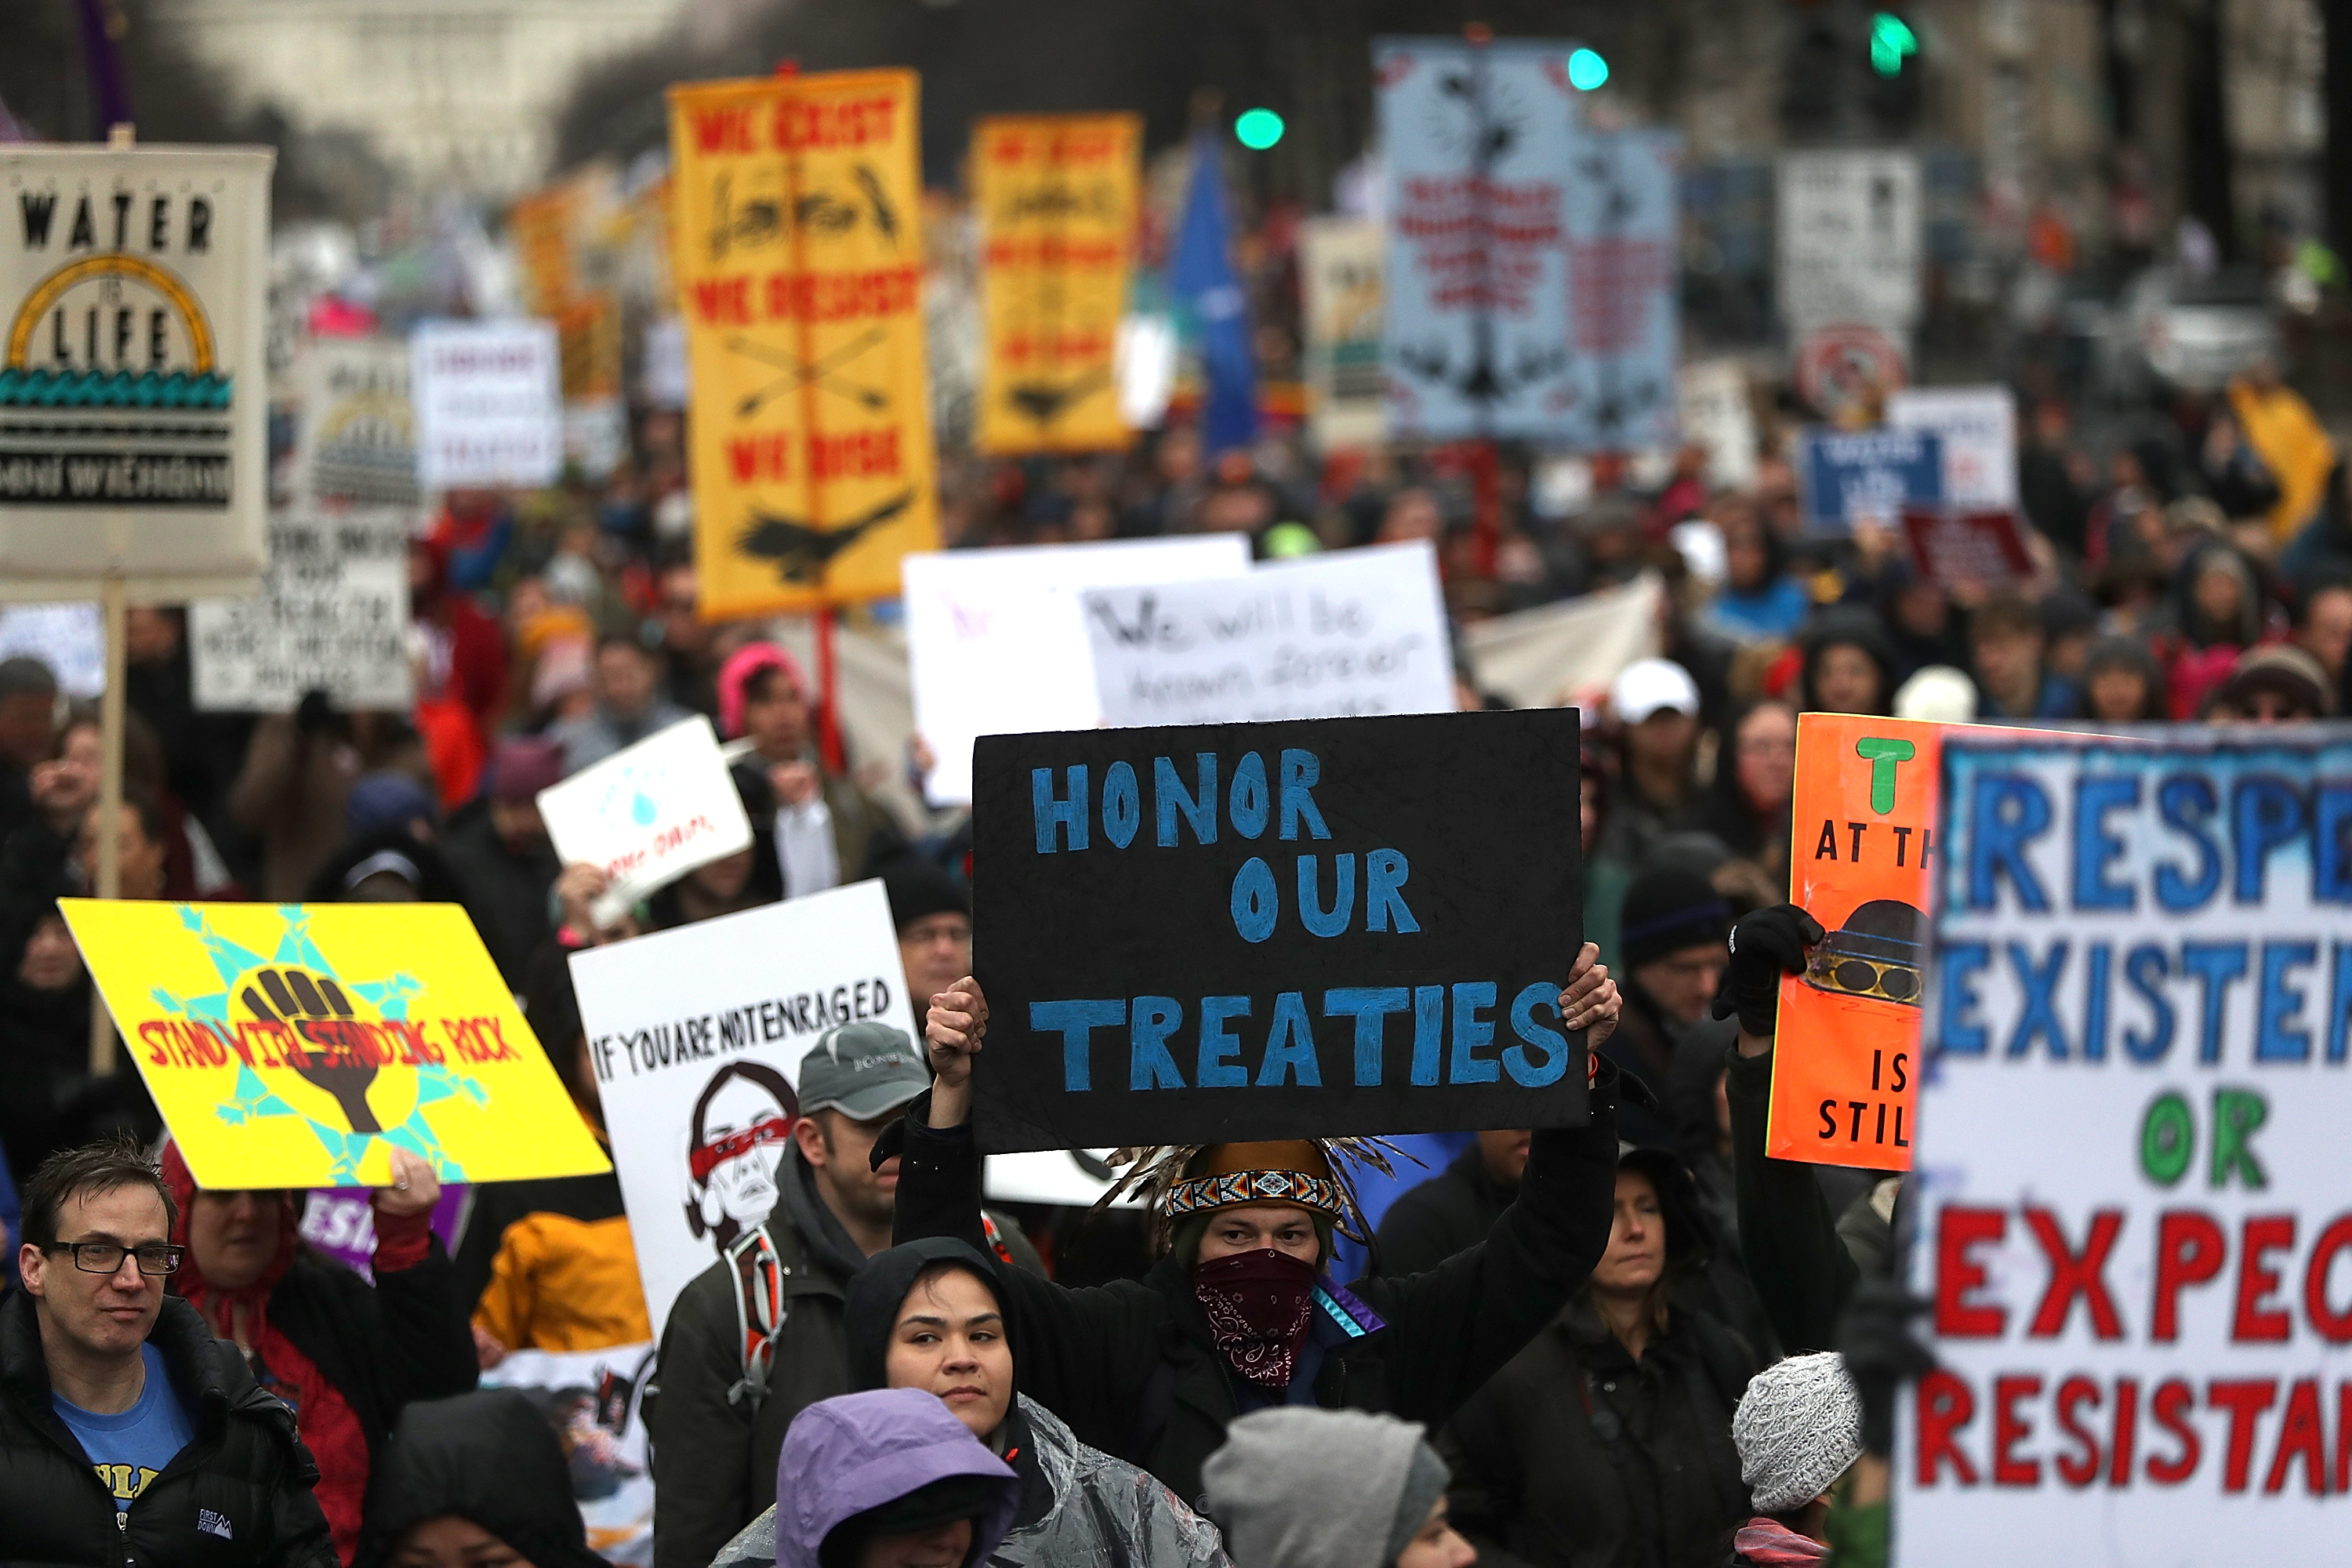 Protesters march during a demonstration against the Dakota Access Pipeline on March 10, 2017 in Washington, D.C.